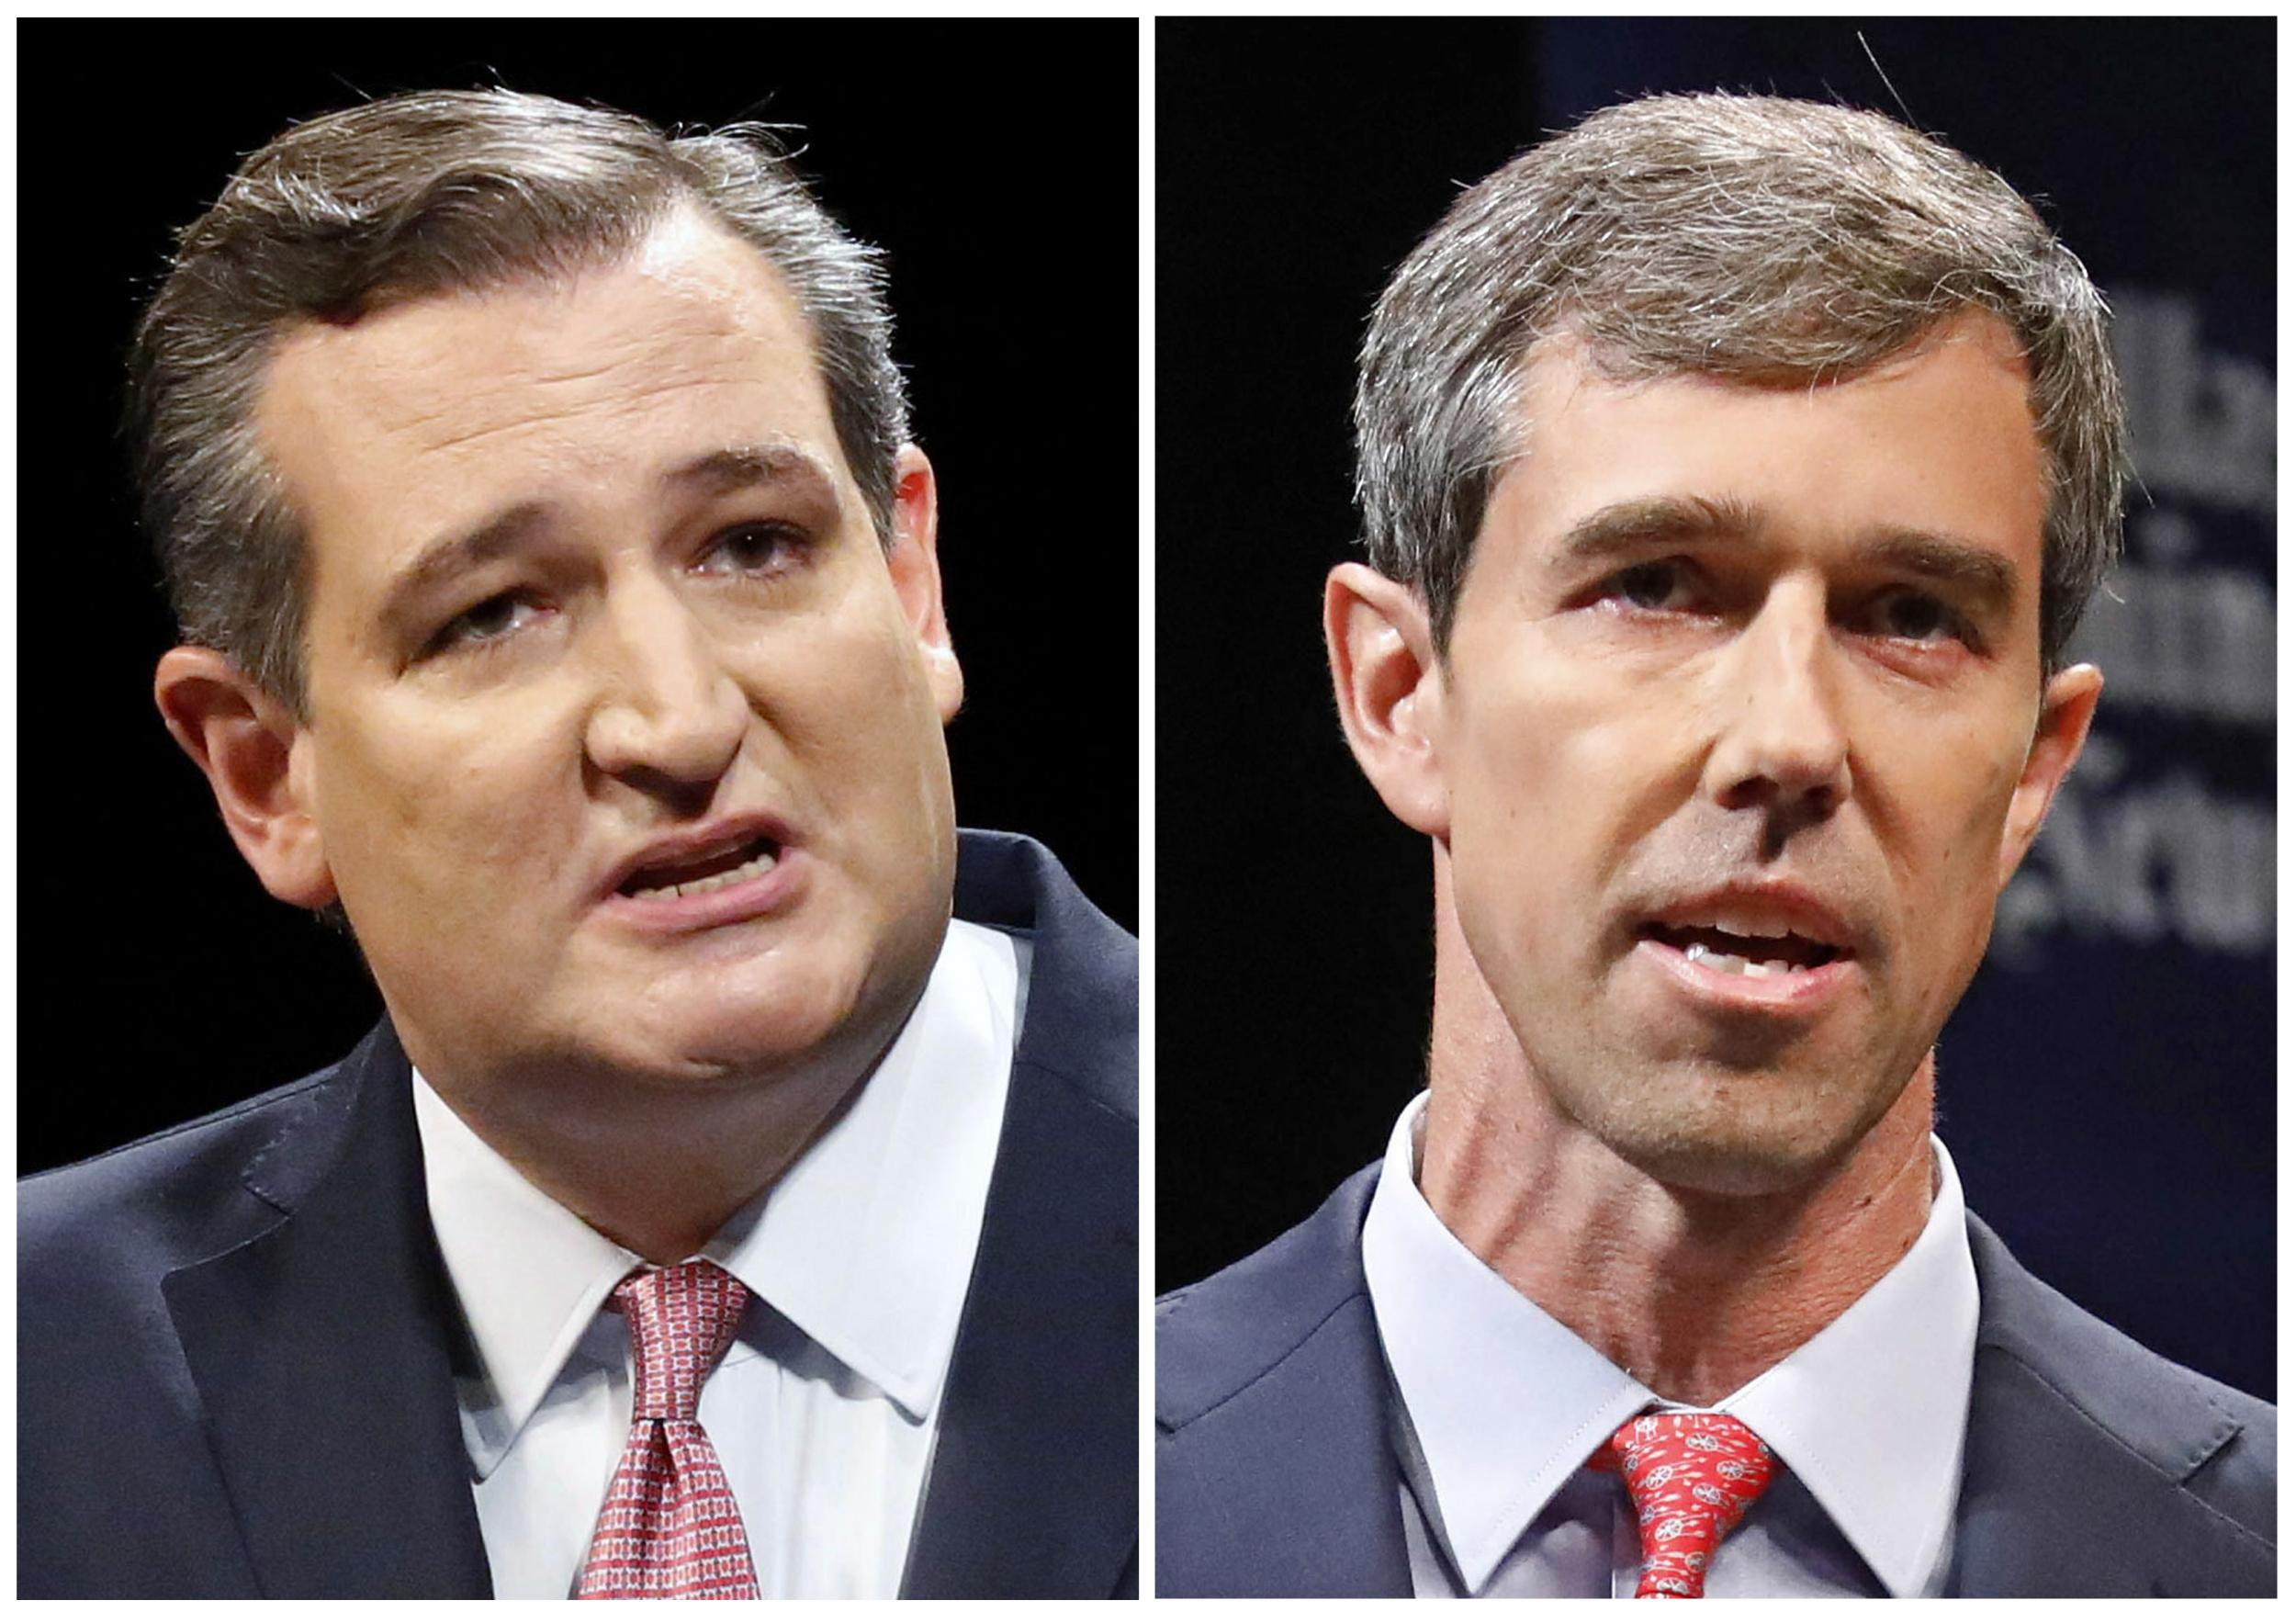 The paths to victory for Beto O'Rourke and Ted Cruz in Texas showdown